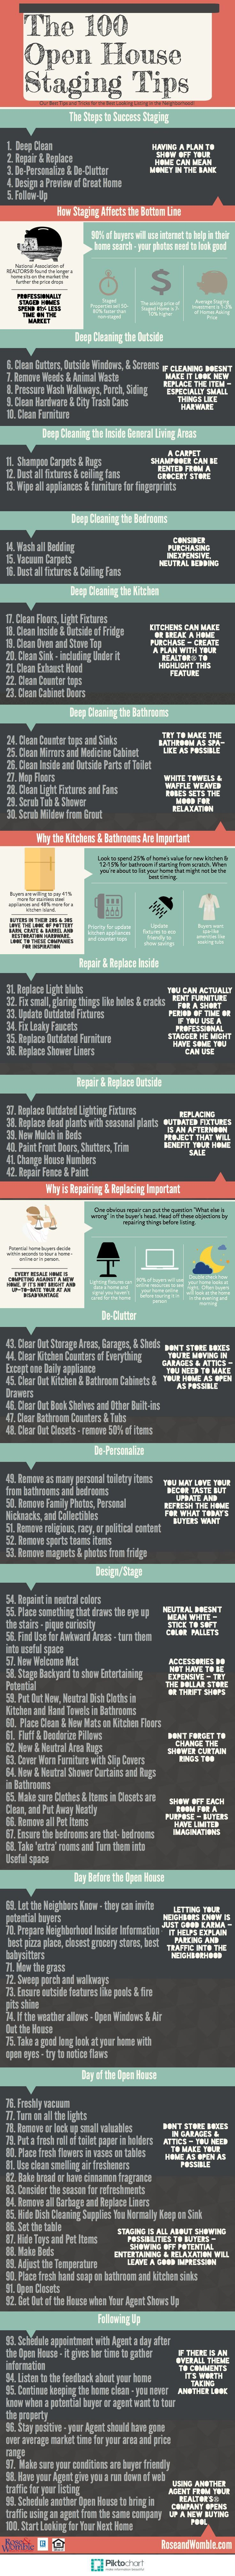 100 Open House Staging Tips #RealEstat #Infographic real estate investing, investing in real estate